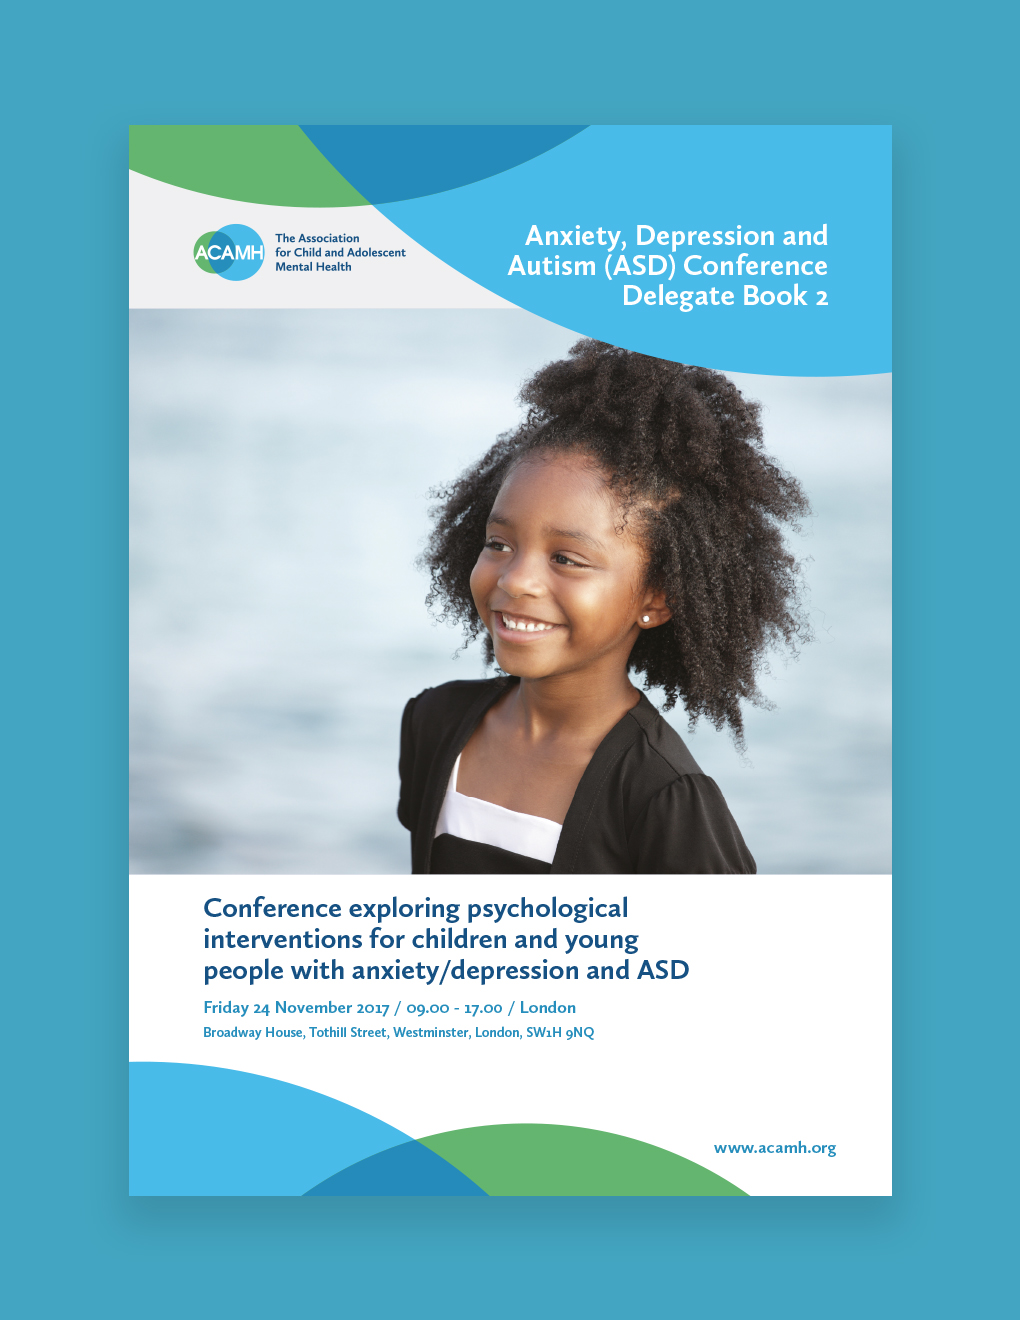 Fever Design – The Association for Child and Adolescent Mental Health